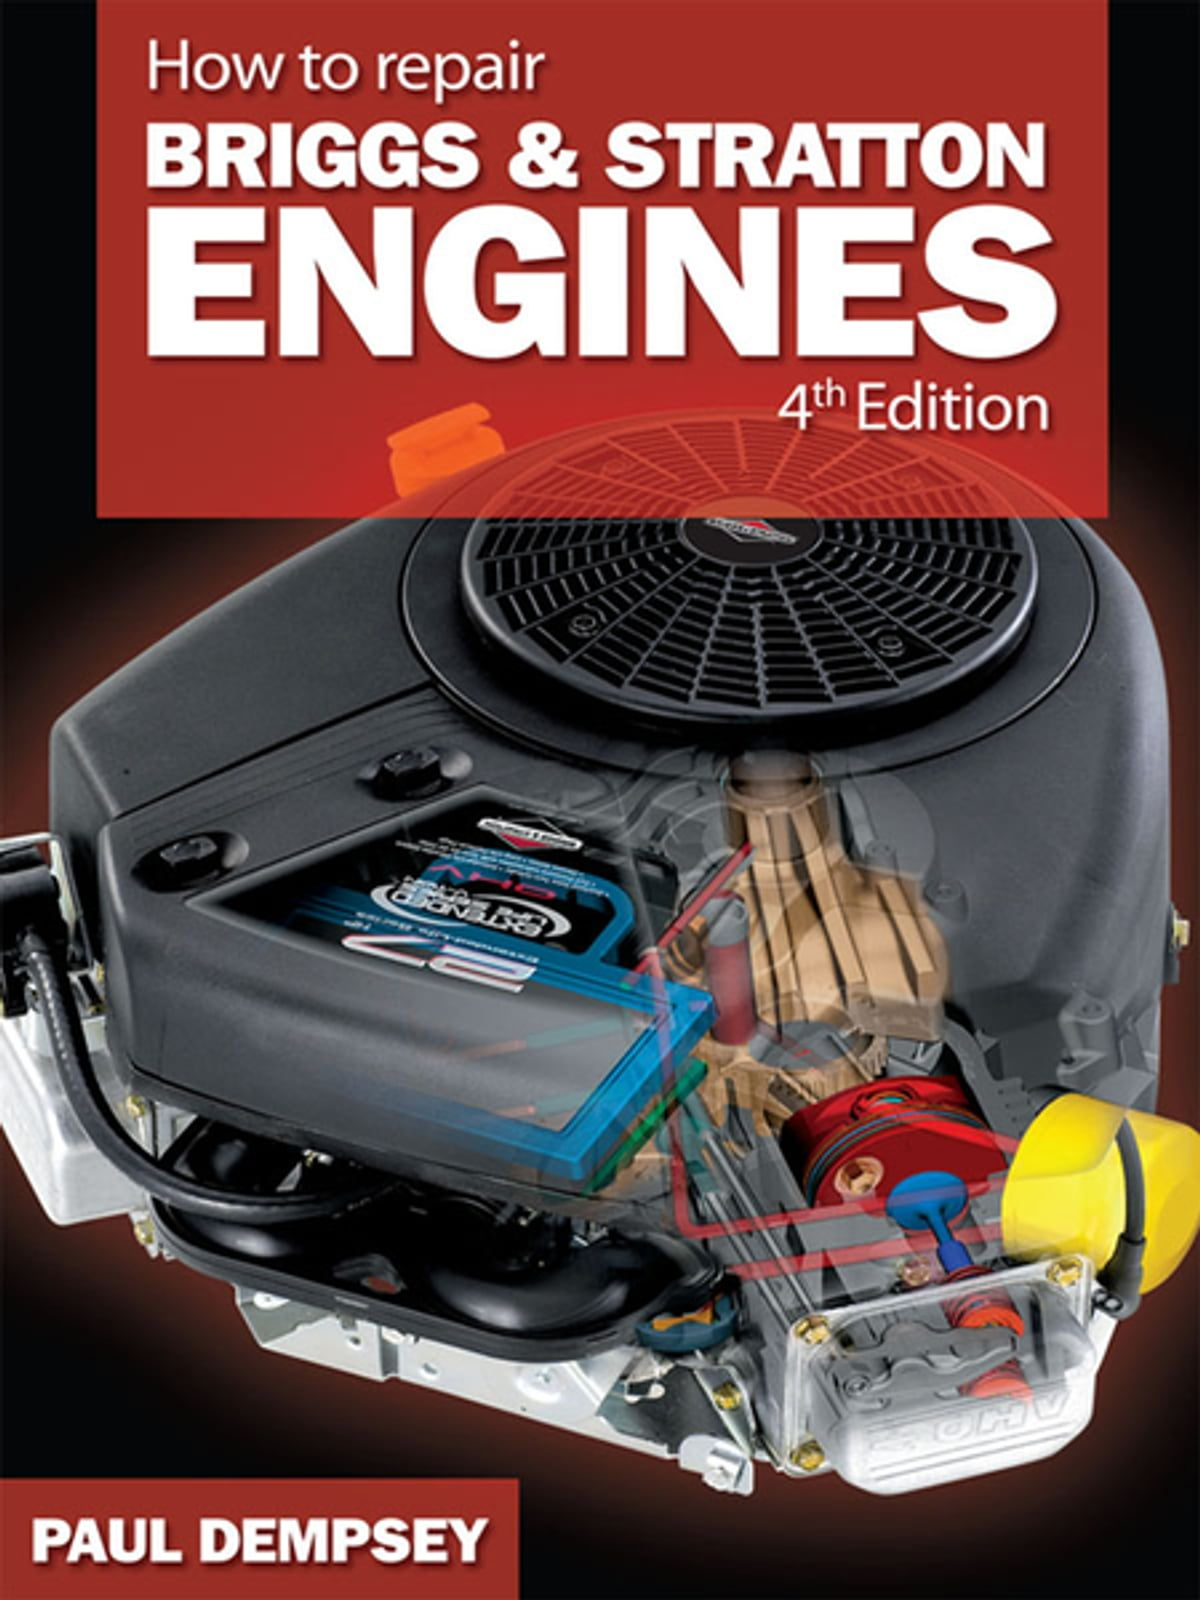 How to Repair Briggs and Stratton Engines, 4th Ed. eBook by Paul Dempsey -  9780071542692 | Rakuten Kobo